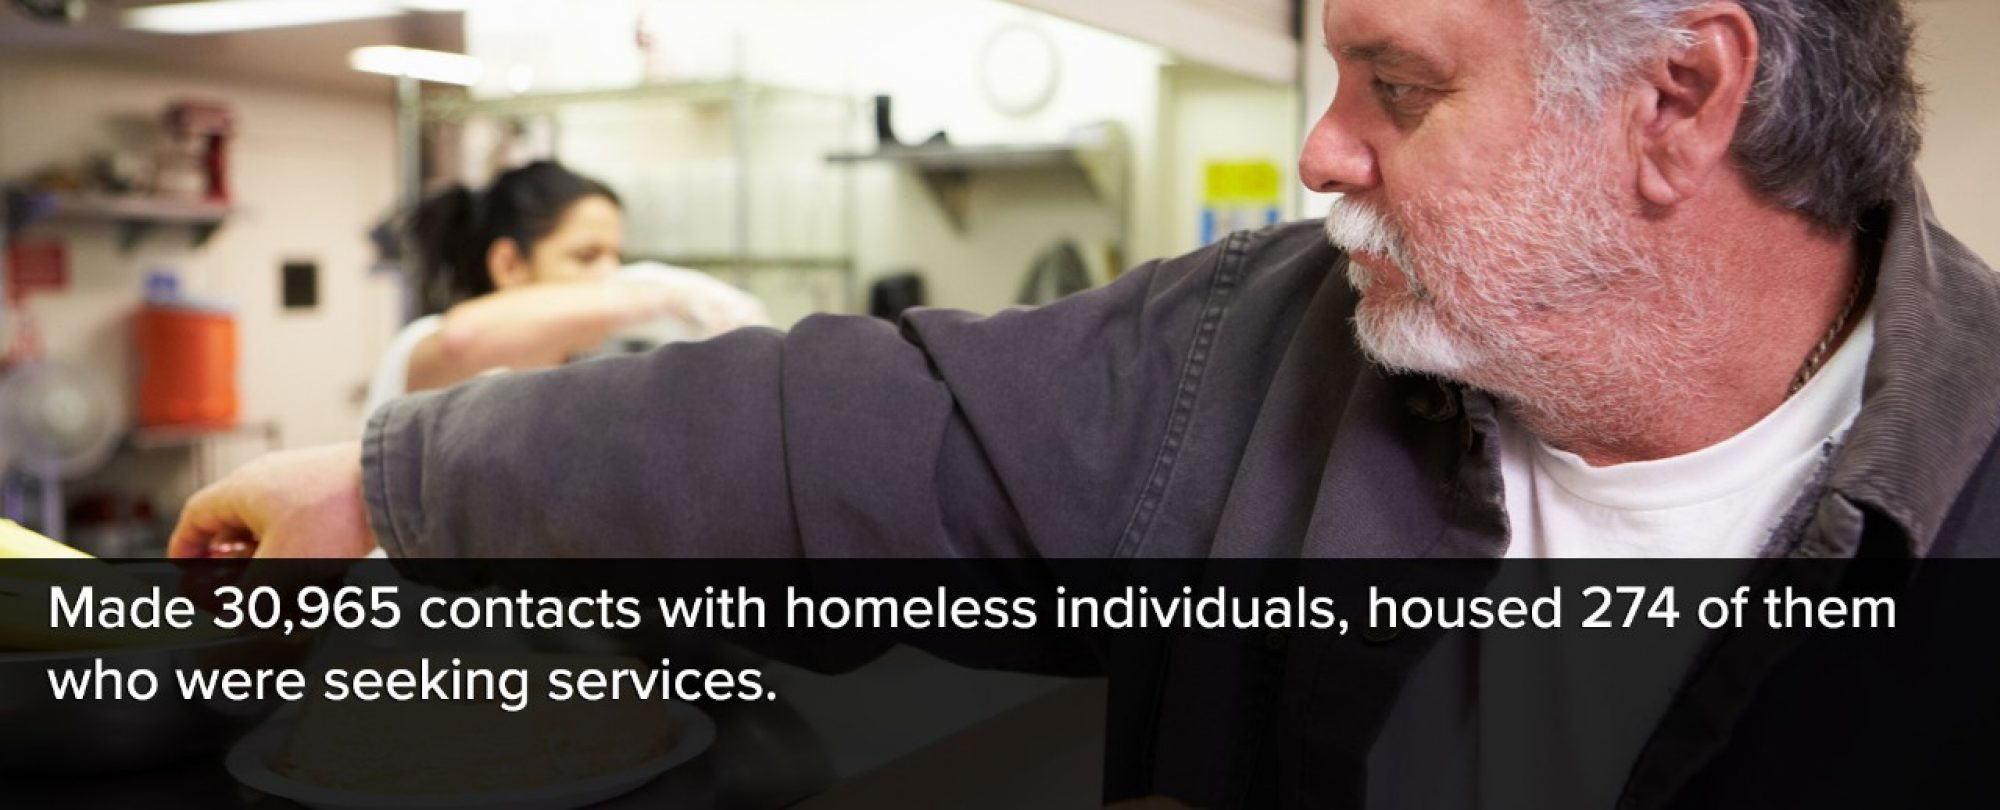 Photo of man recieving meal at a local homeless shelter. Denver made 30,965 contacts with homeless individuals and housed 274 of them who were seeking services.